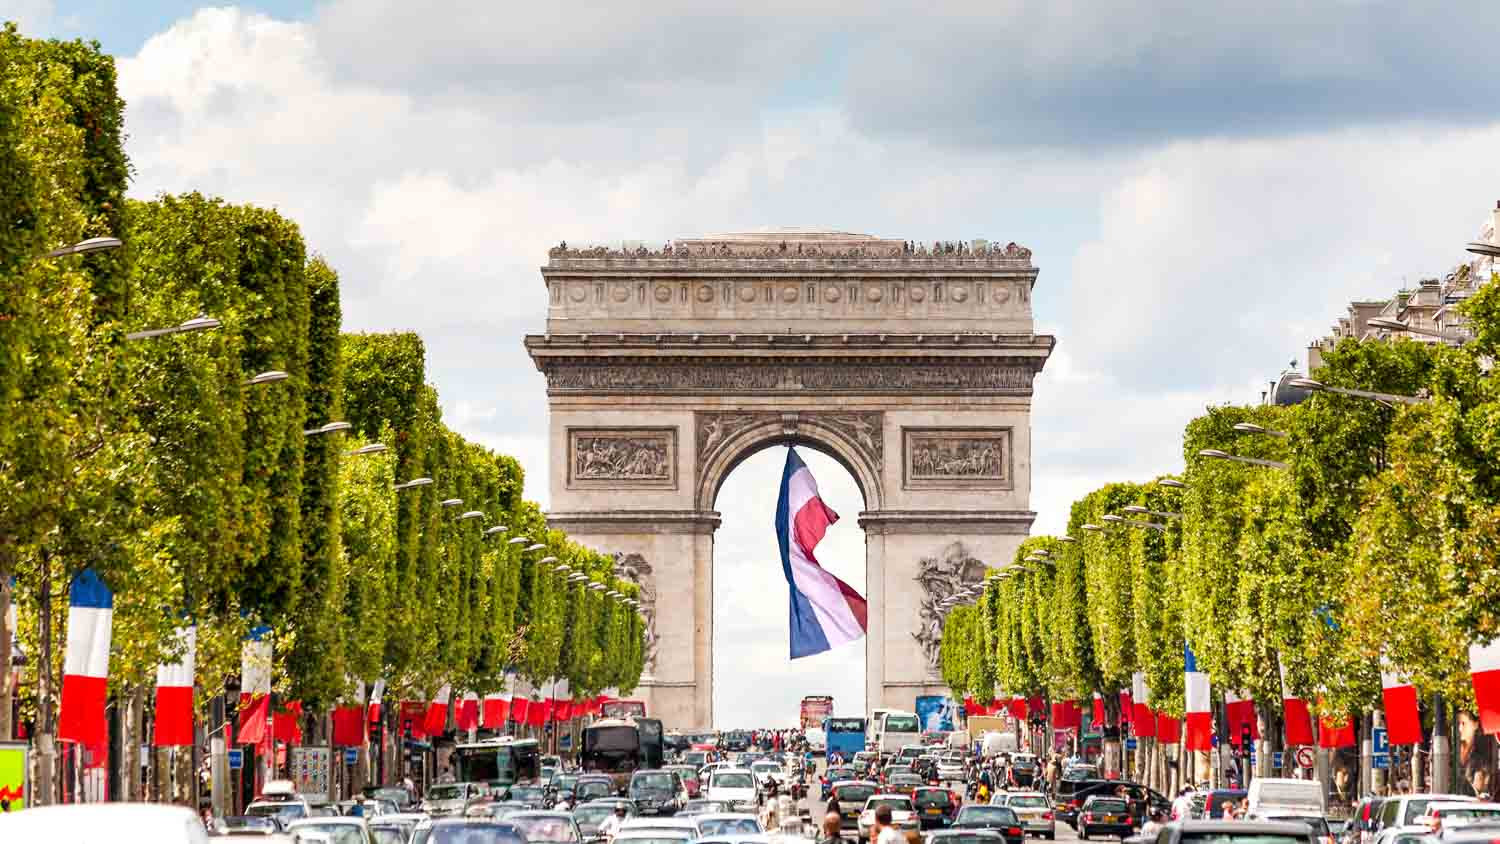 It's the start of the annual Bastille Day parade